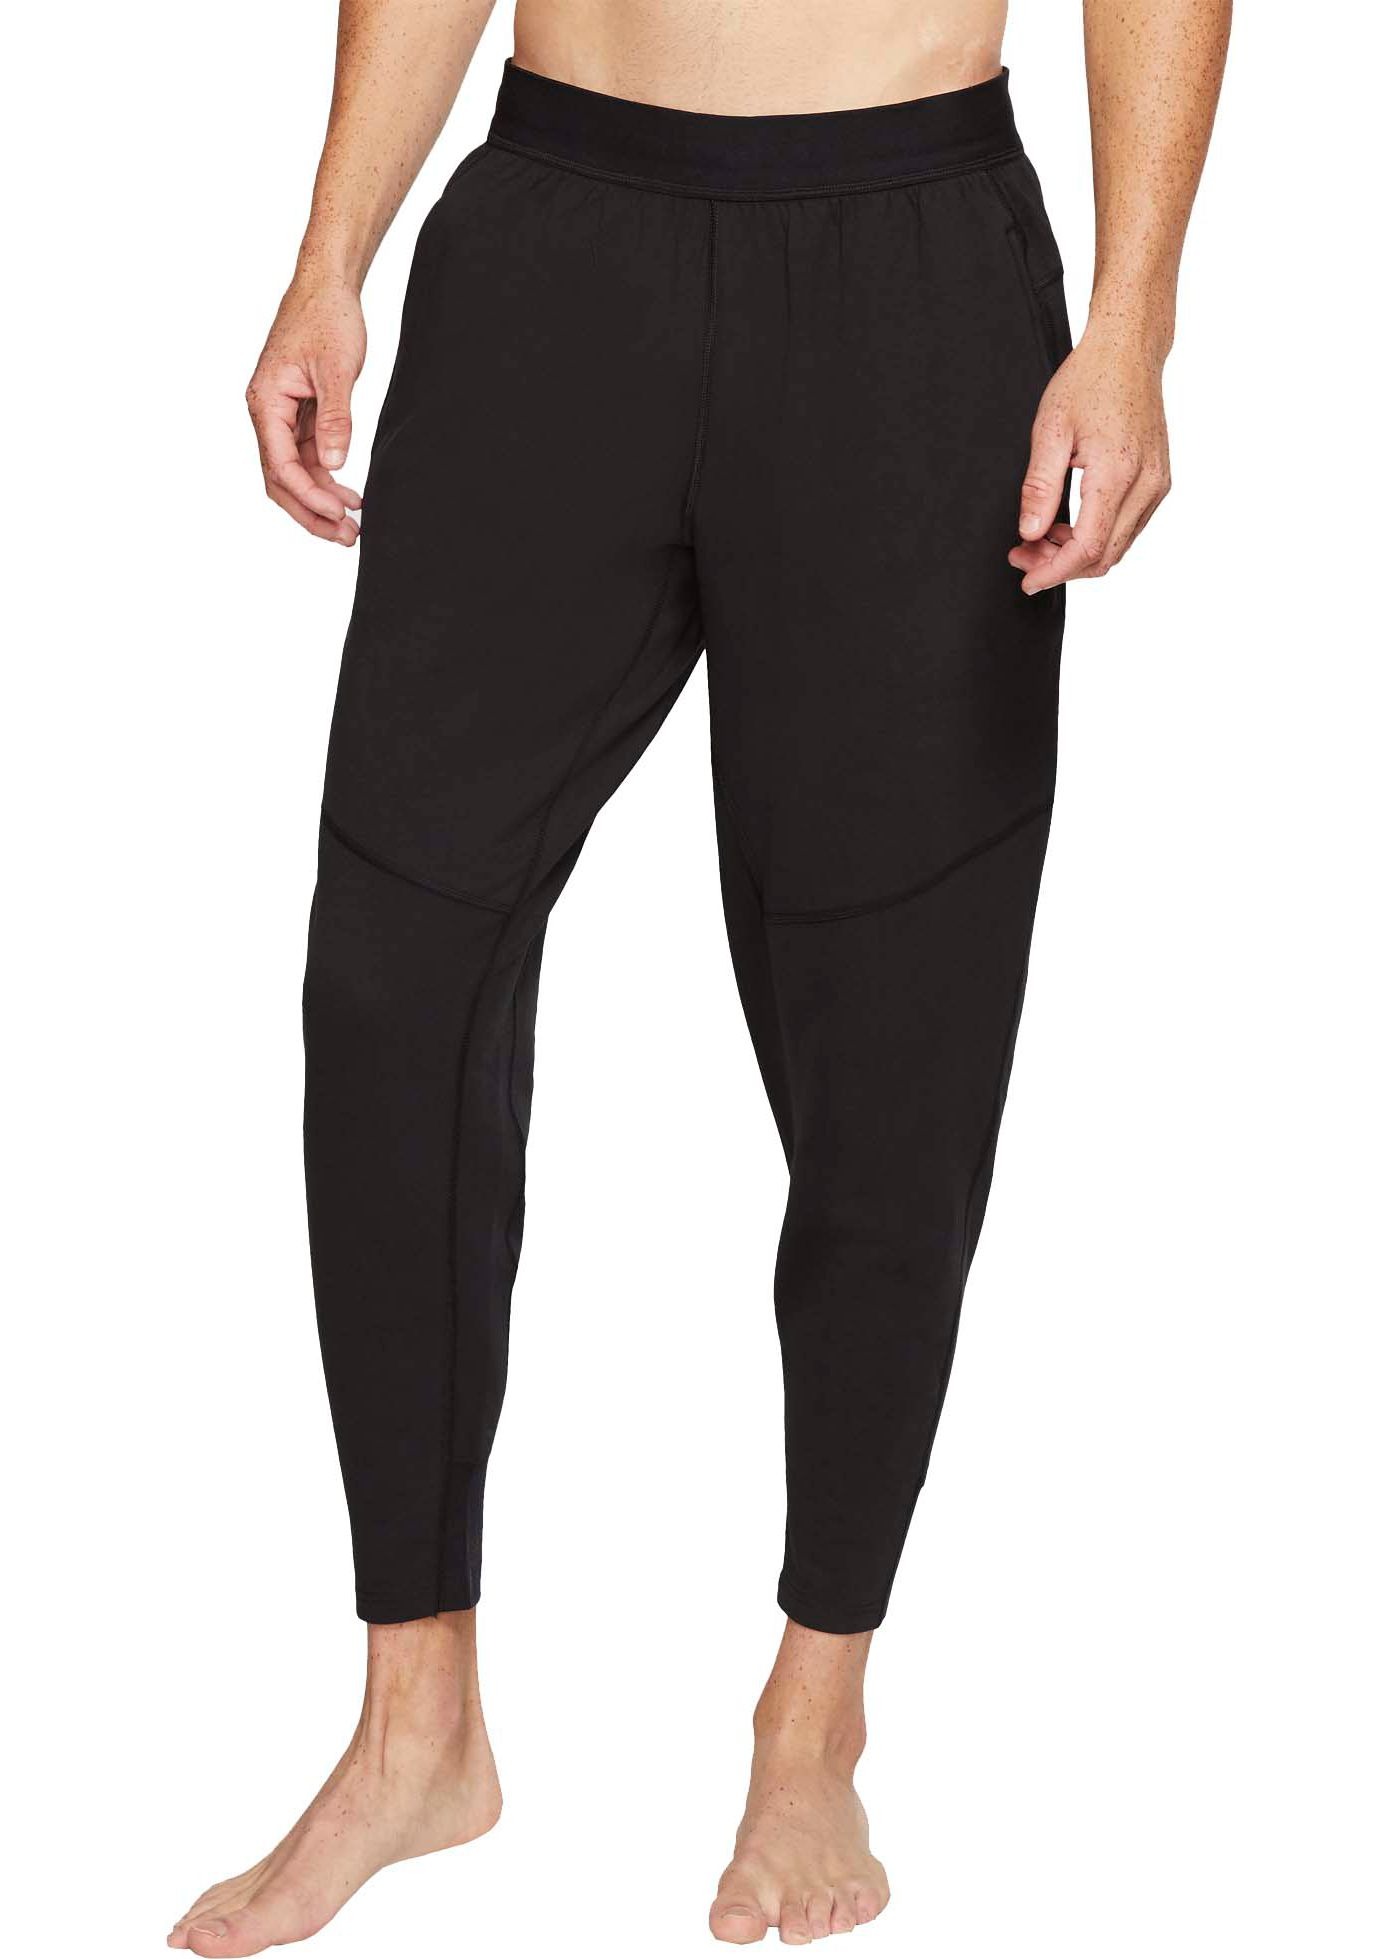 Nike Men's Yoga Dri-FIT Pants